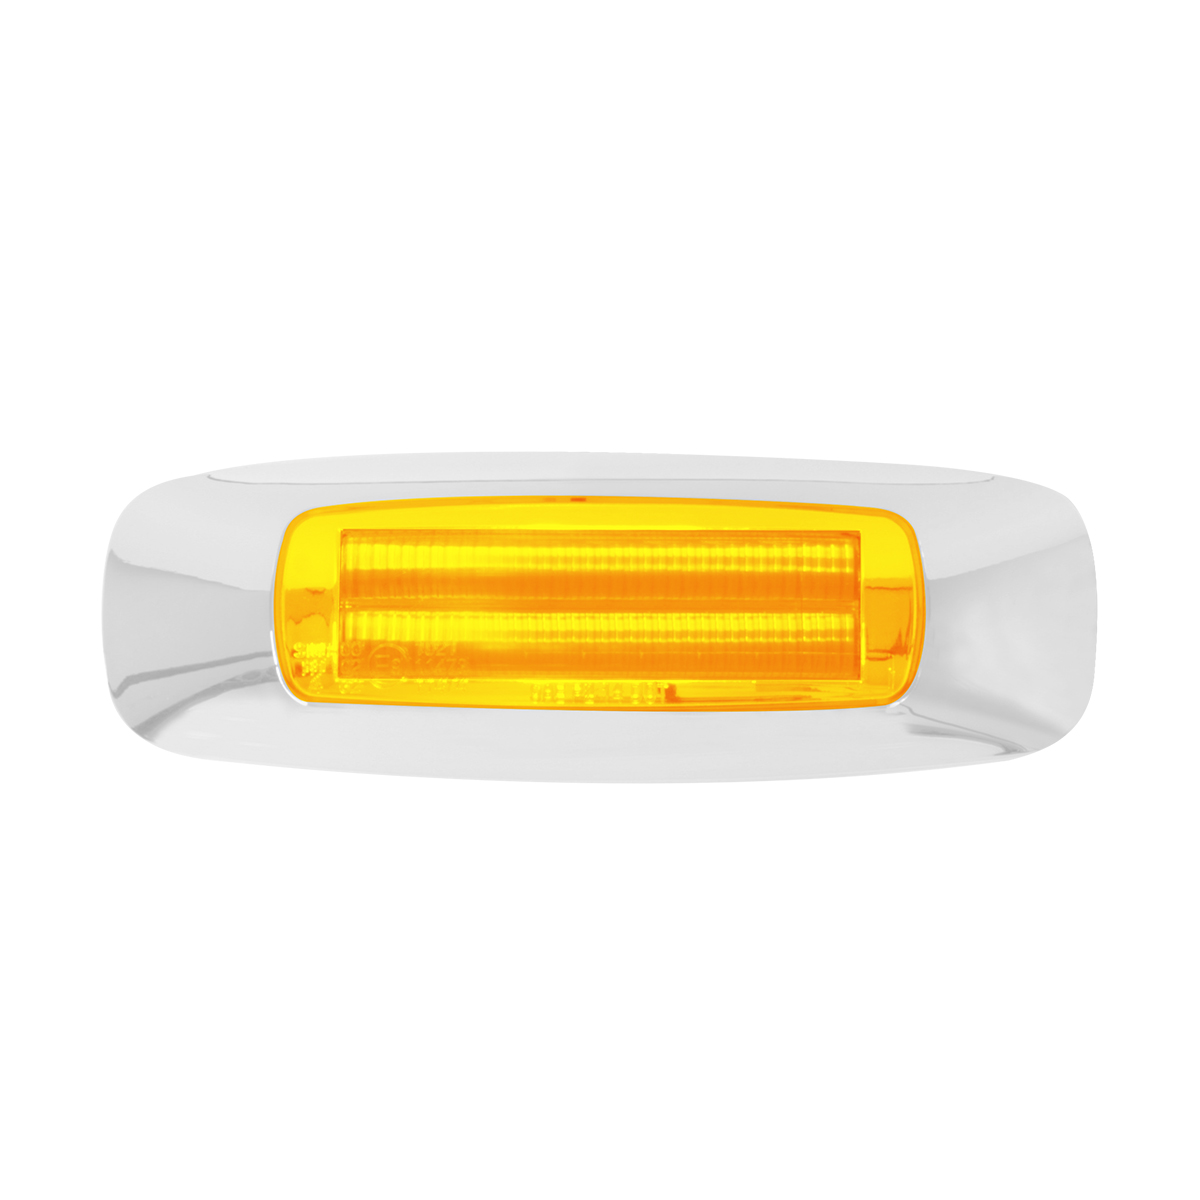 "74730 4-5/8"" Dual Function Rectangular Prime LED Light"